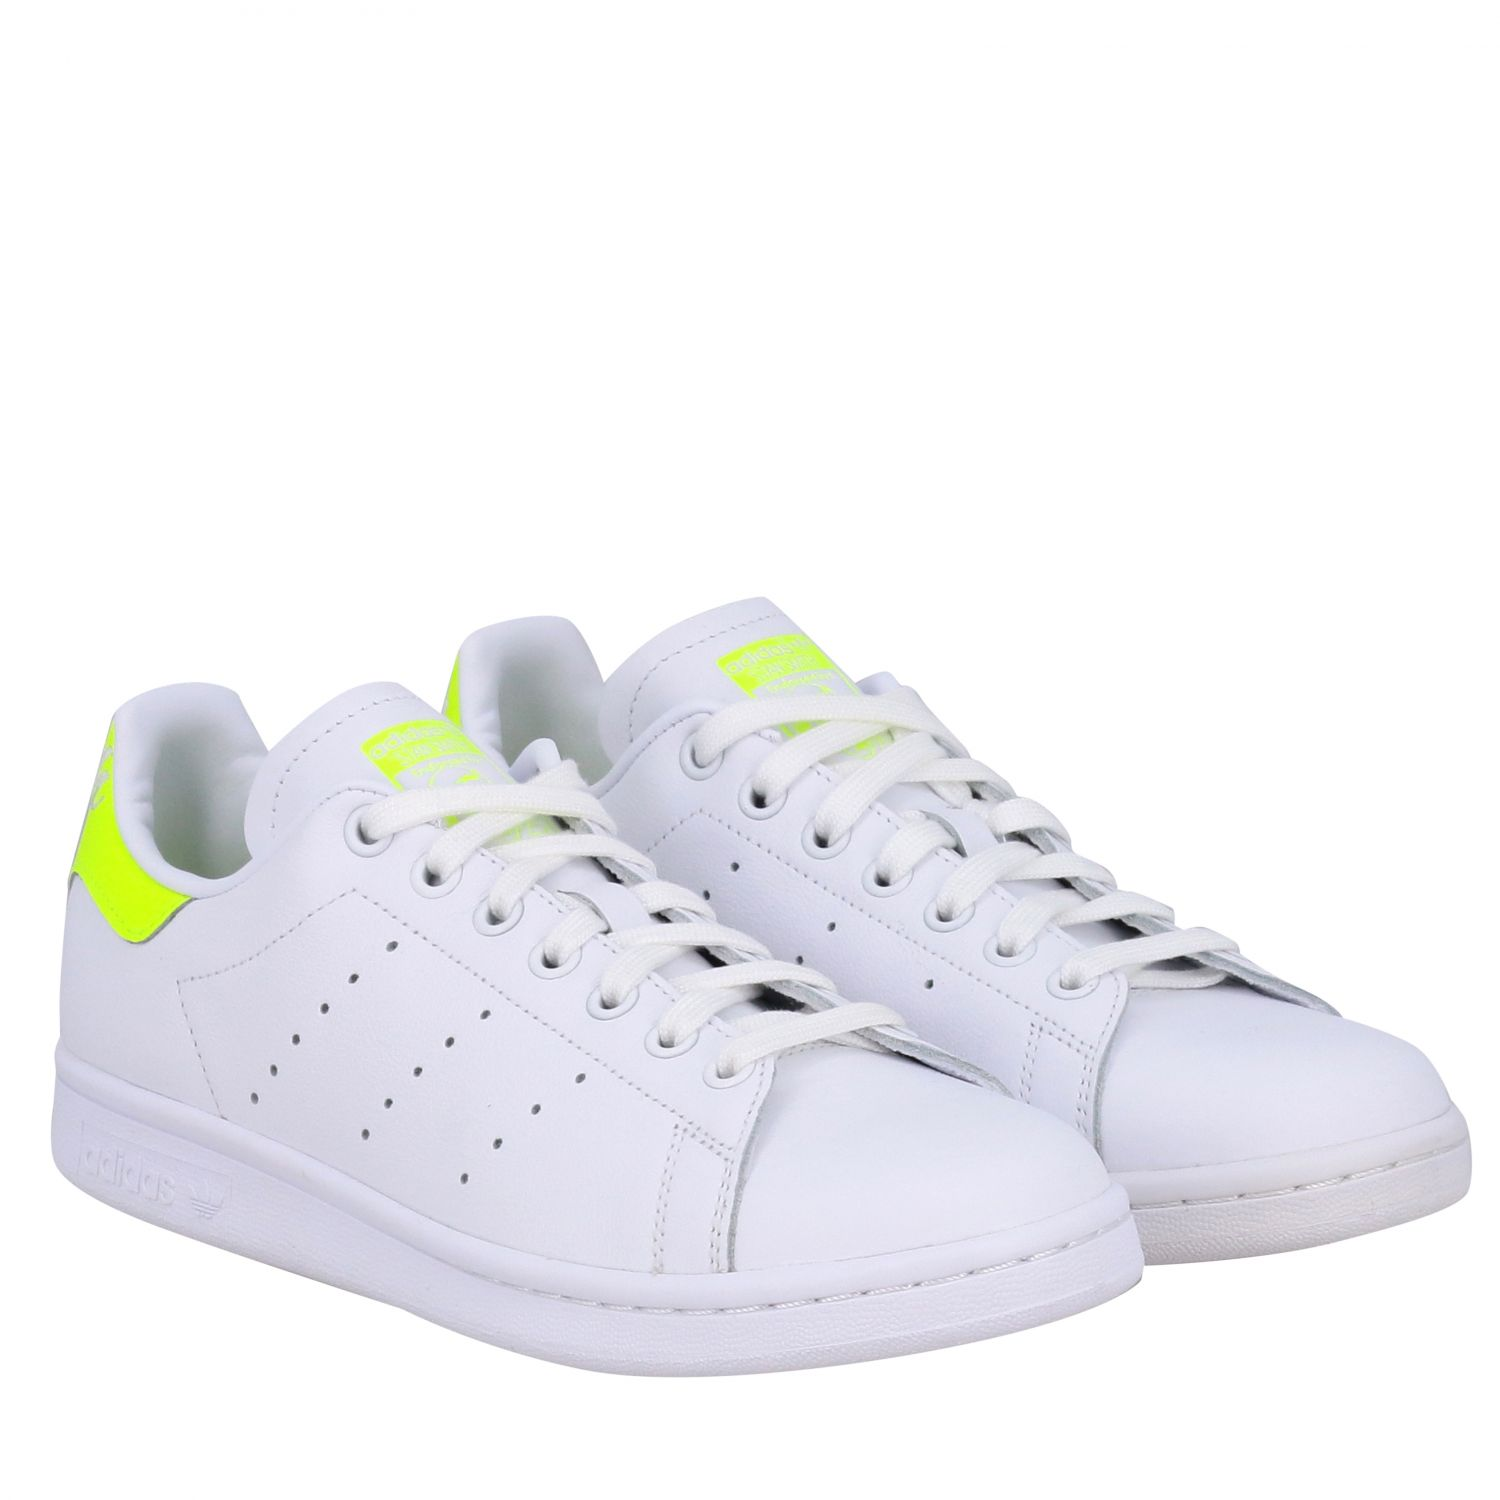 Sneakers Adidas Originals: Stan smith sneakers pelle tallone giallo ricamo bianco 2